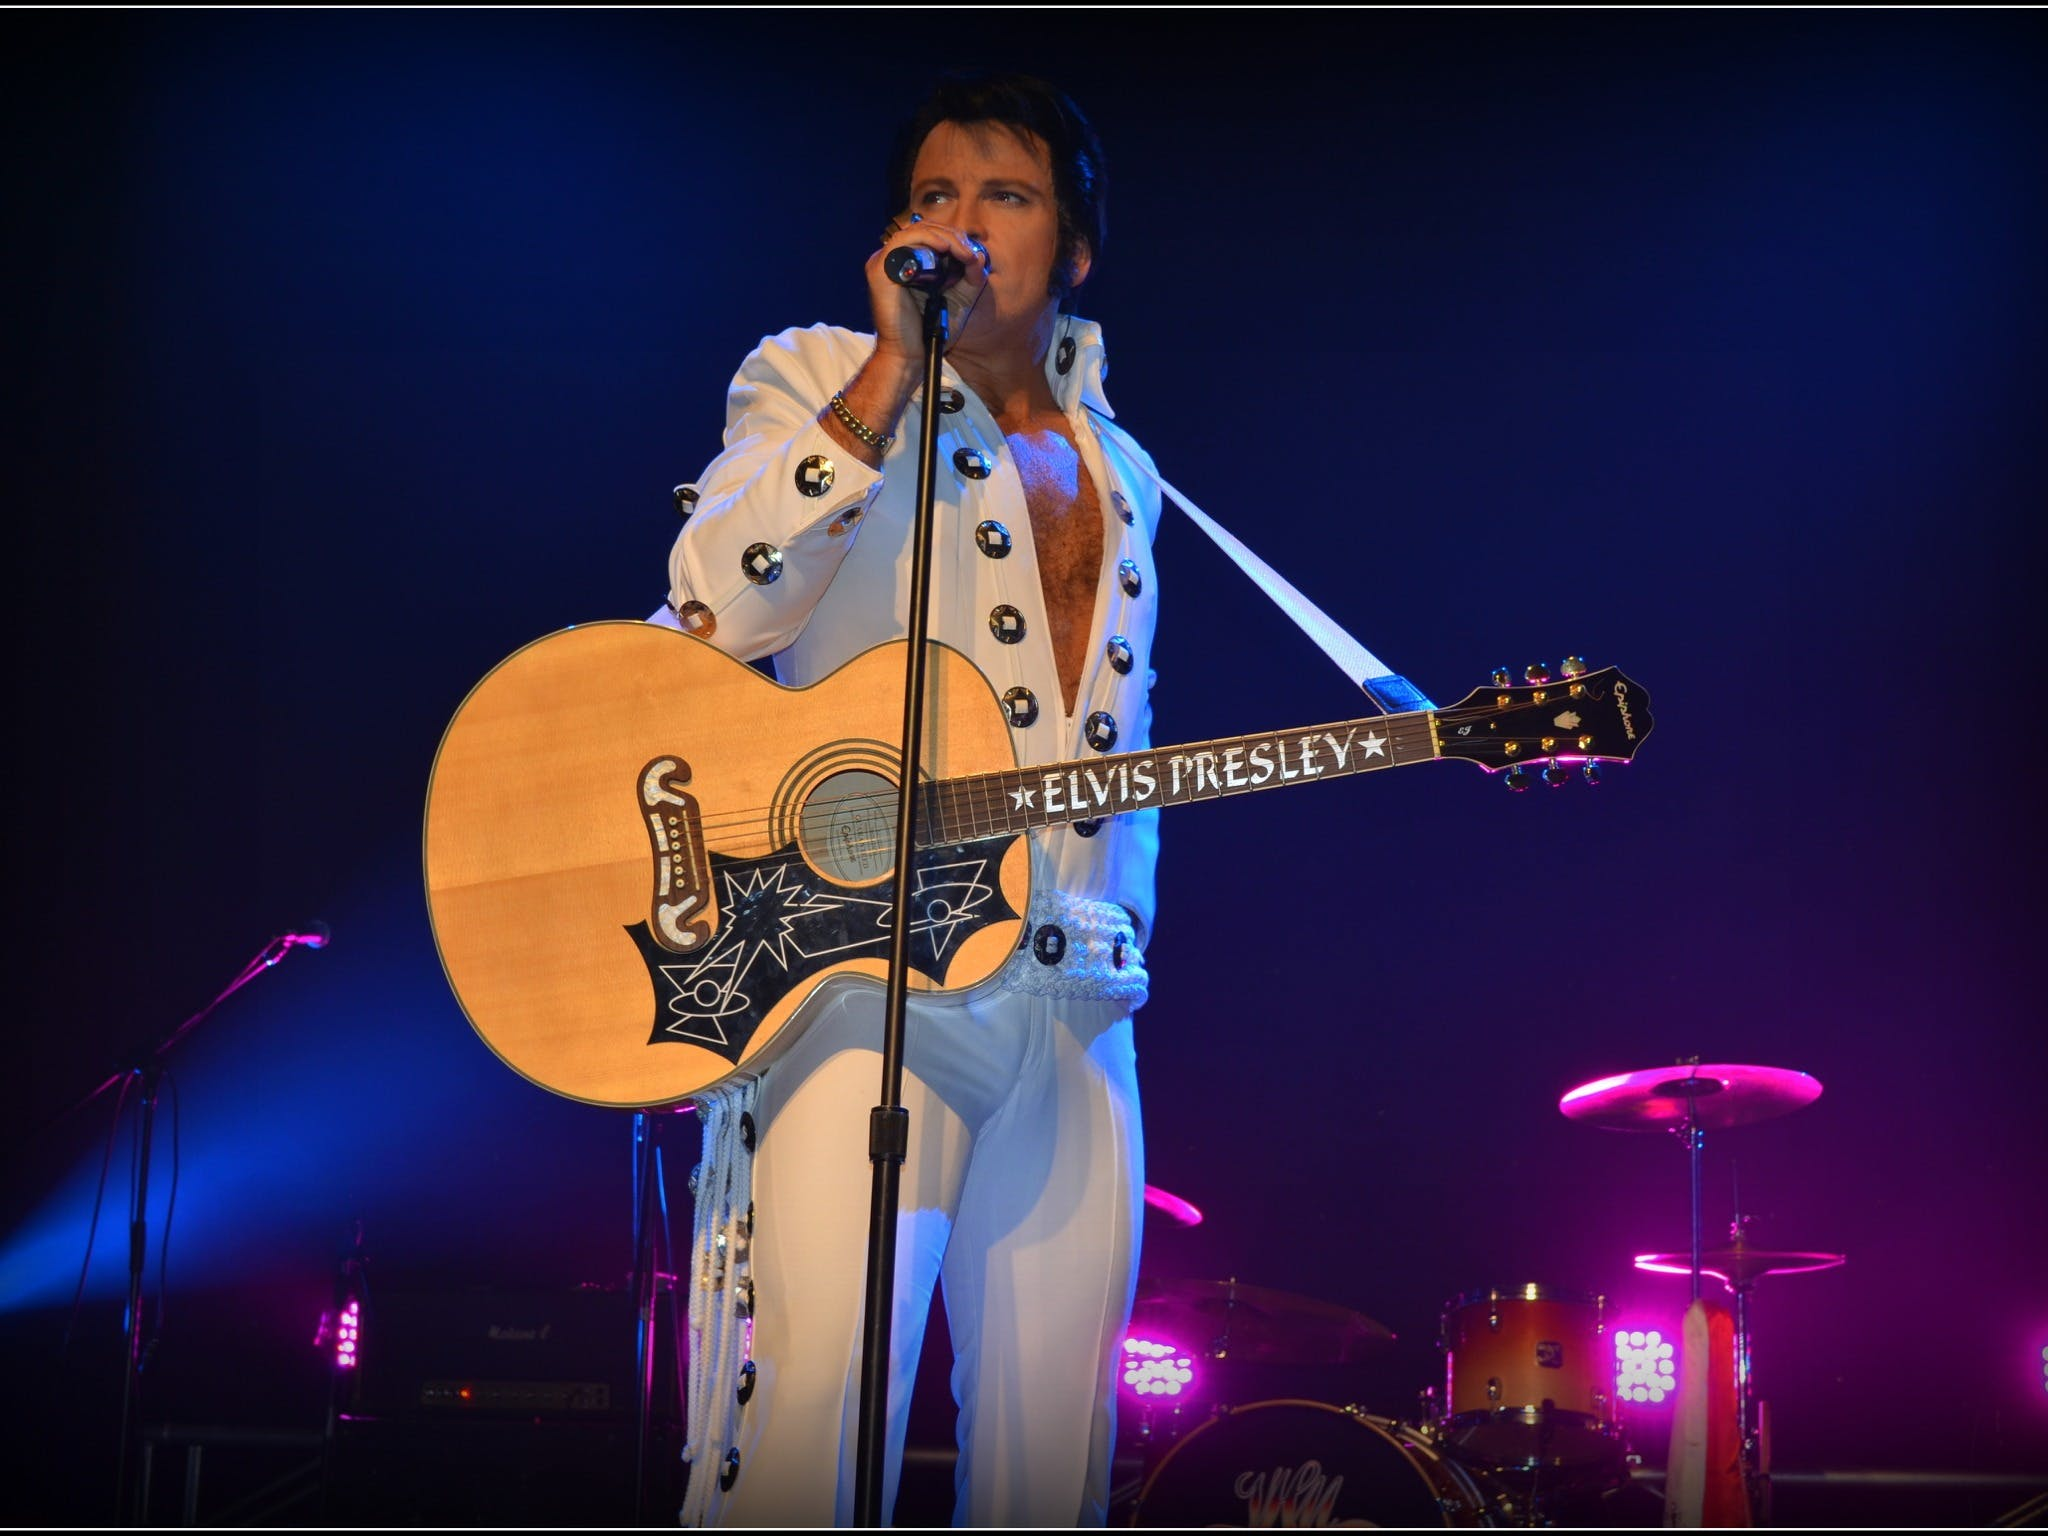 Elvis Forever - Damian Mullin 'Up Close and Personal' - Accommodation Yamba